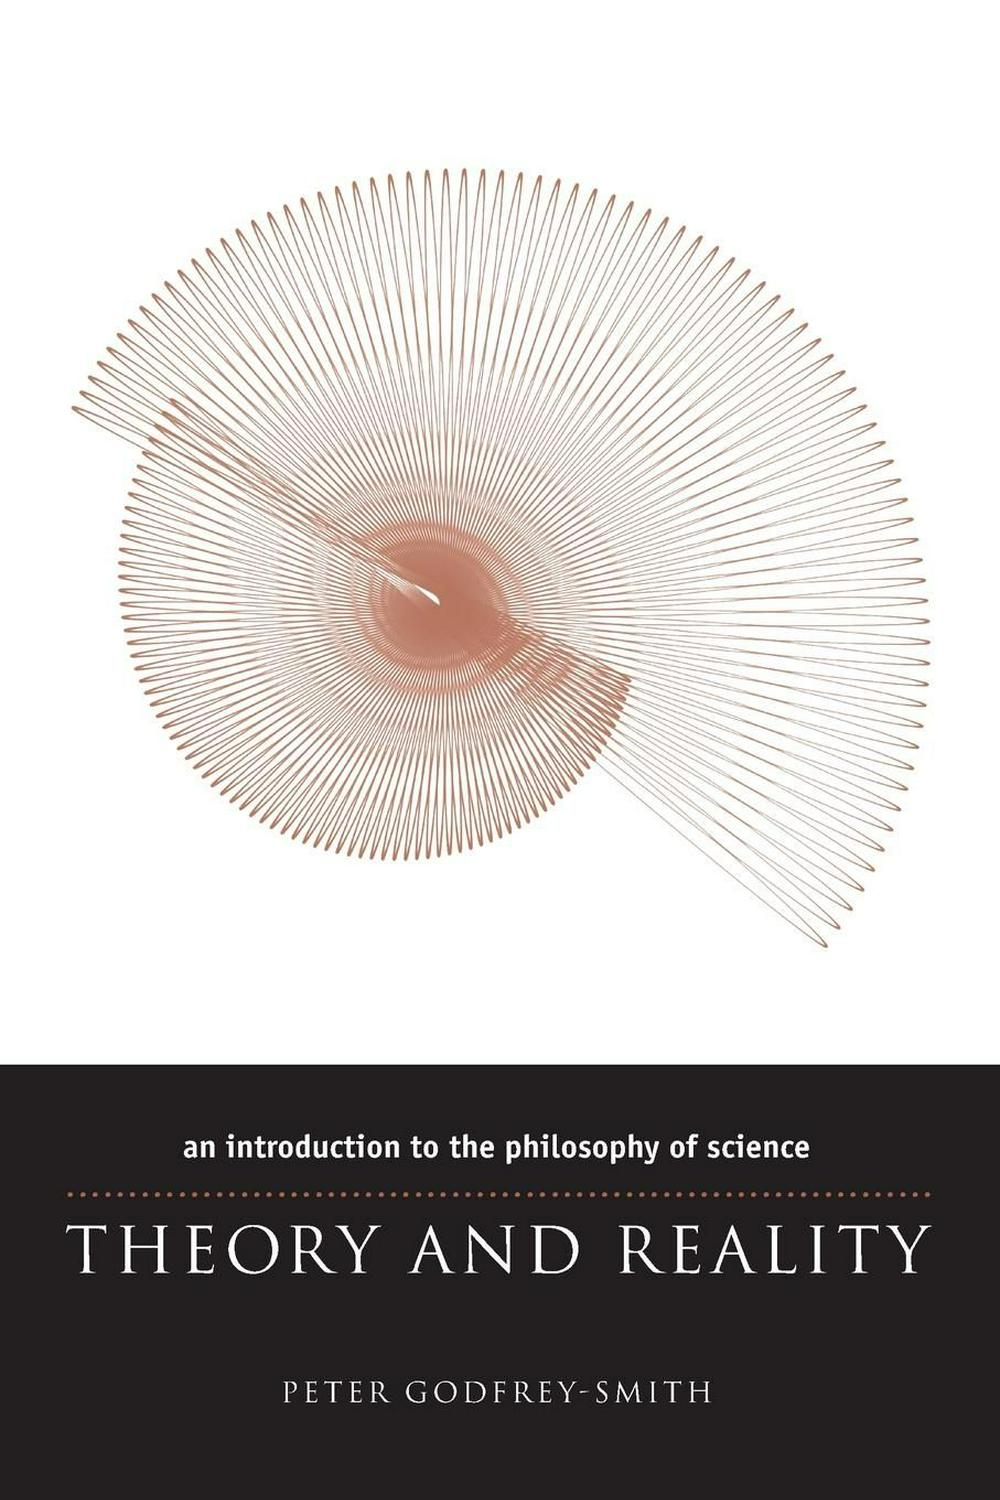 Theory and Reality: An Introduction to the Philosophy of Science by Peter Godfrey-Smith, ISBN: 9780226300634